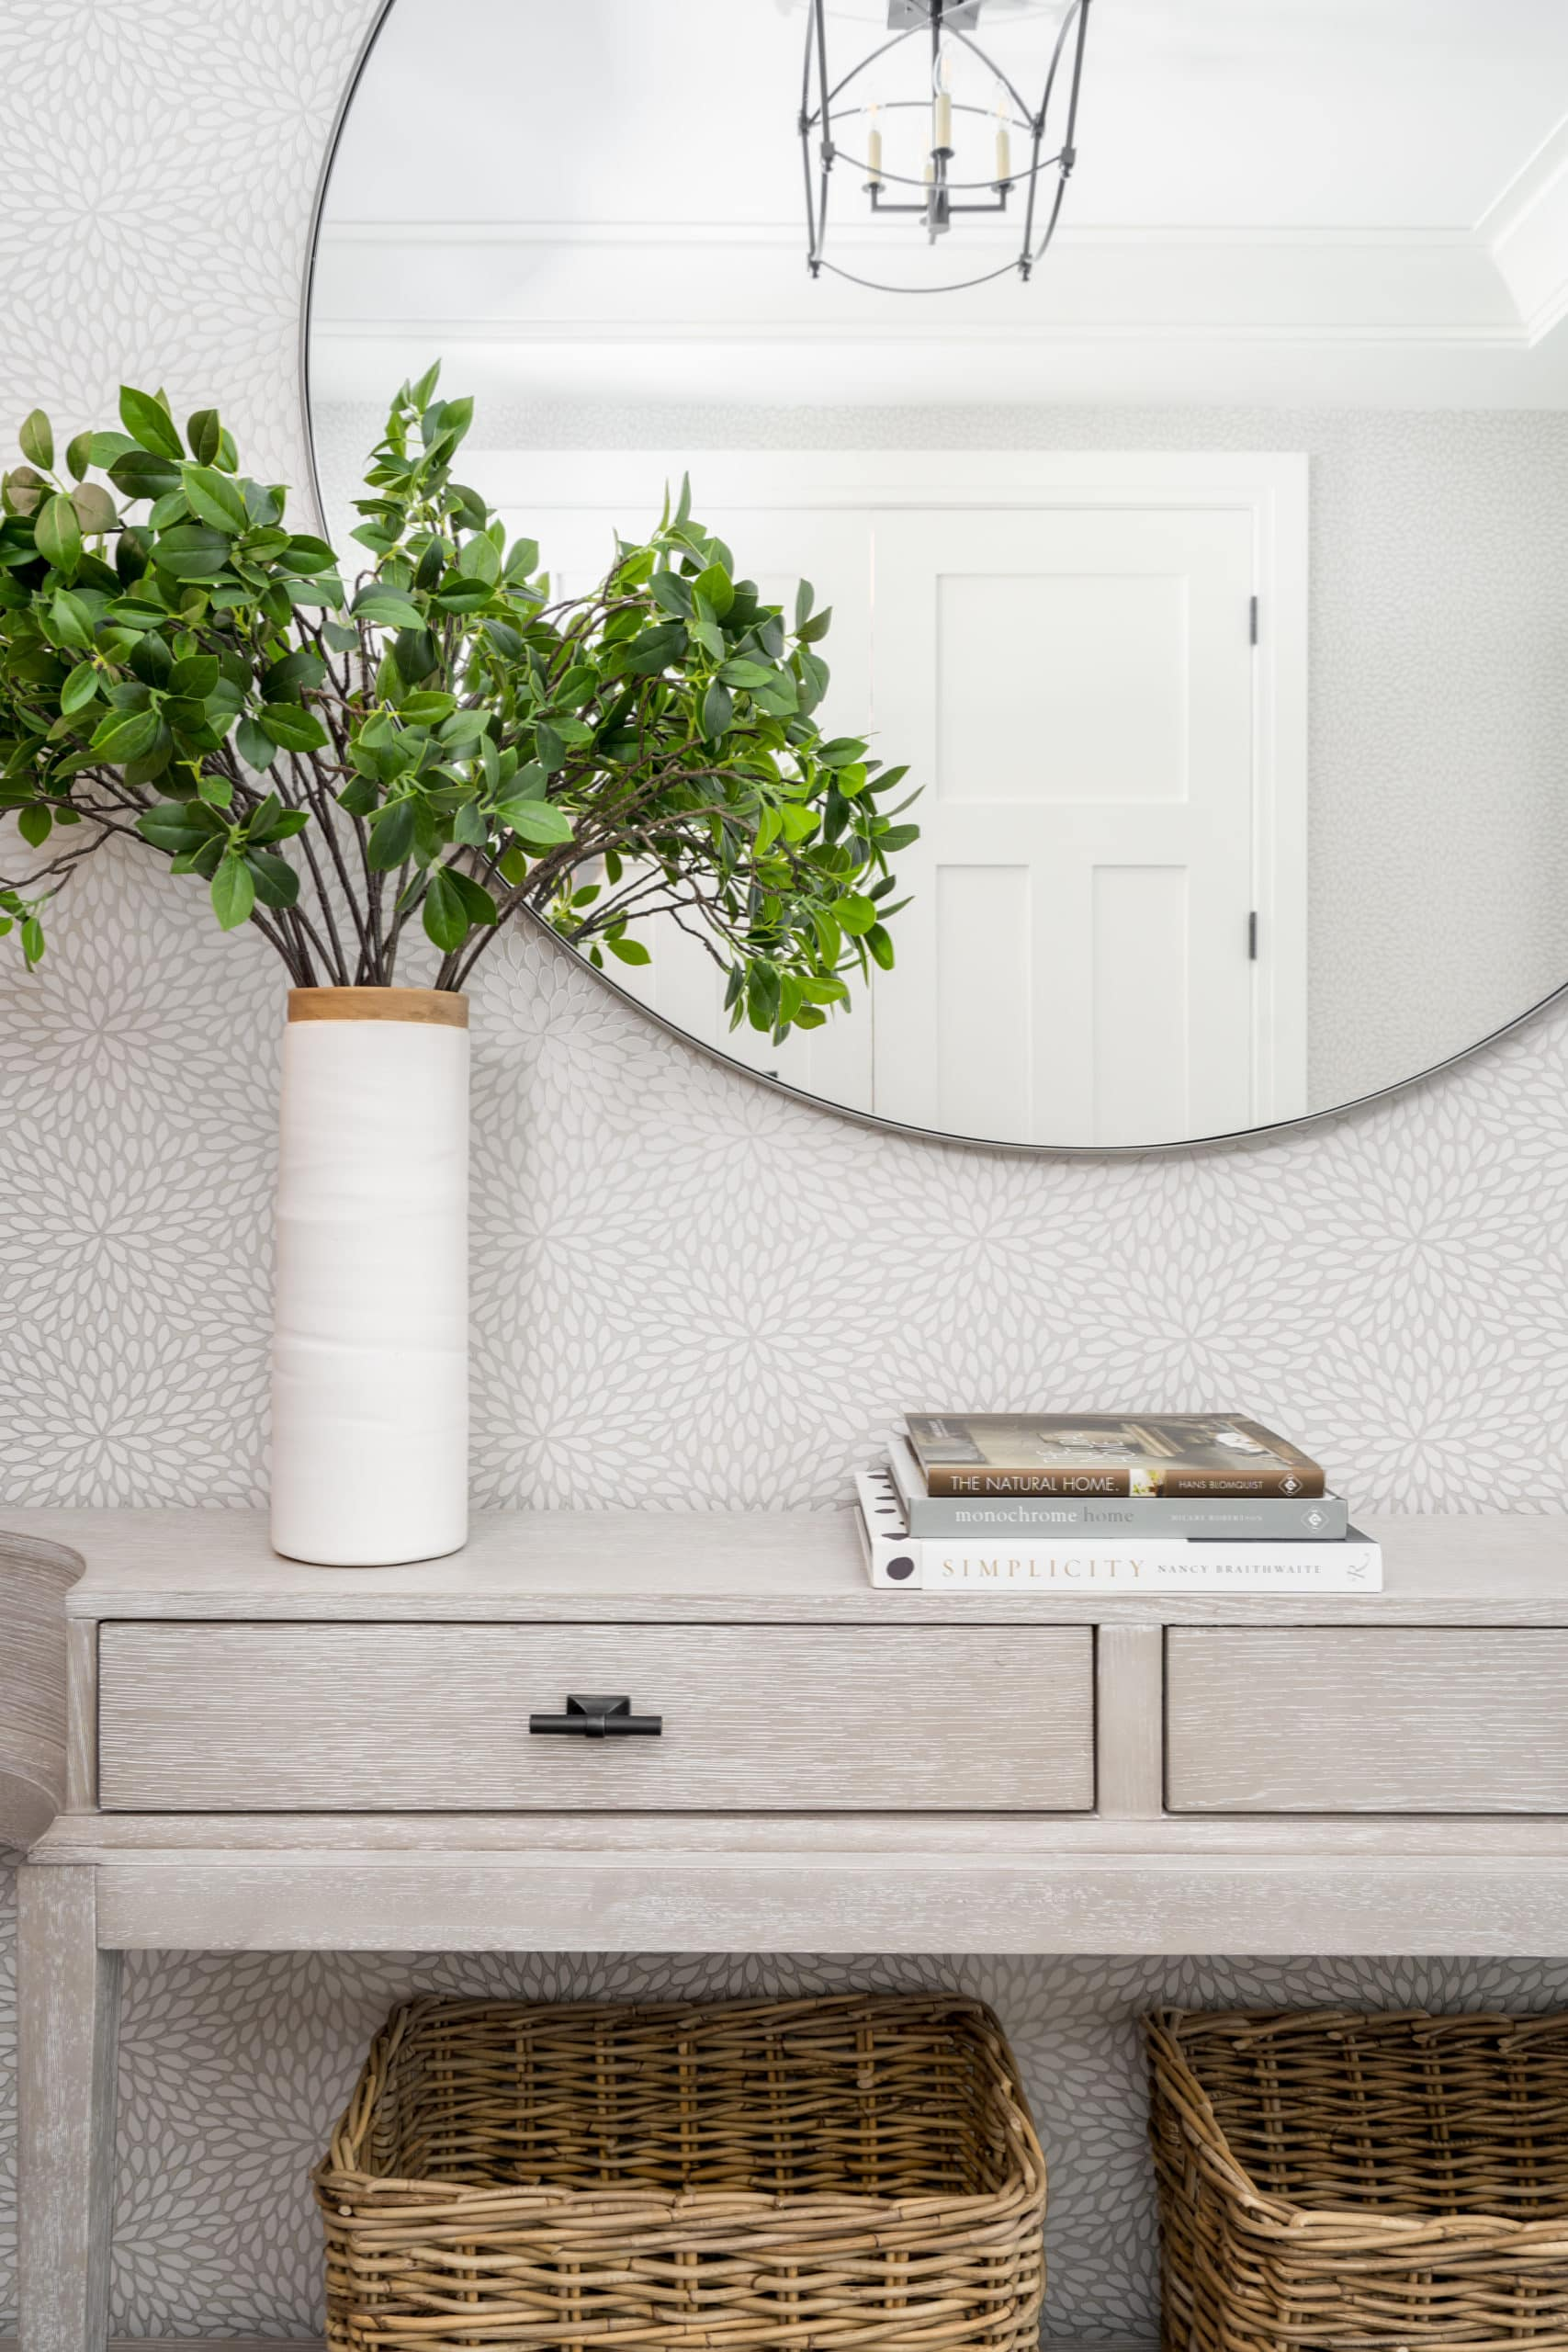 Modern gray table against the wall with a mirror above it